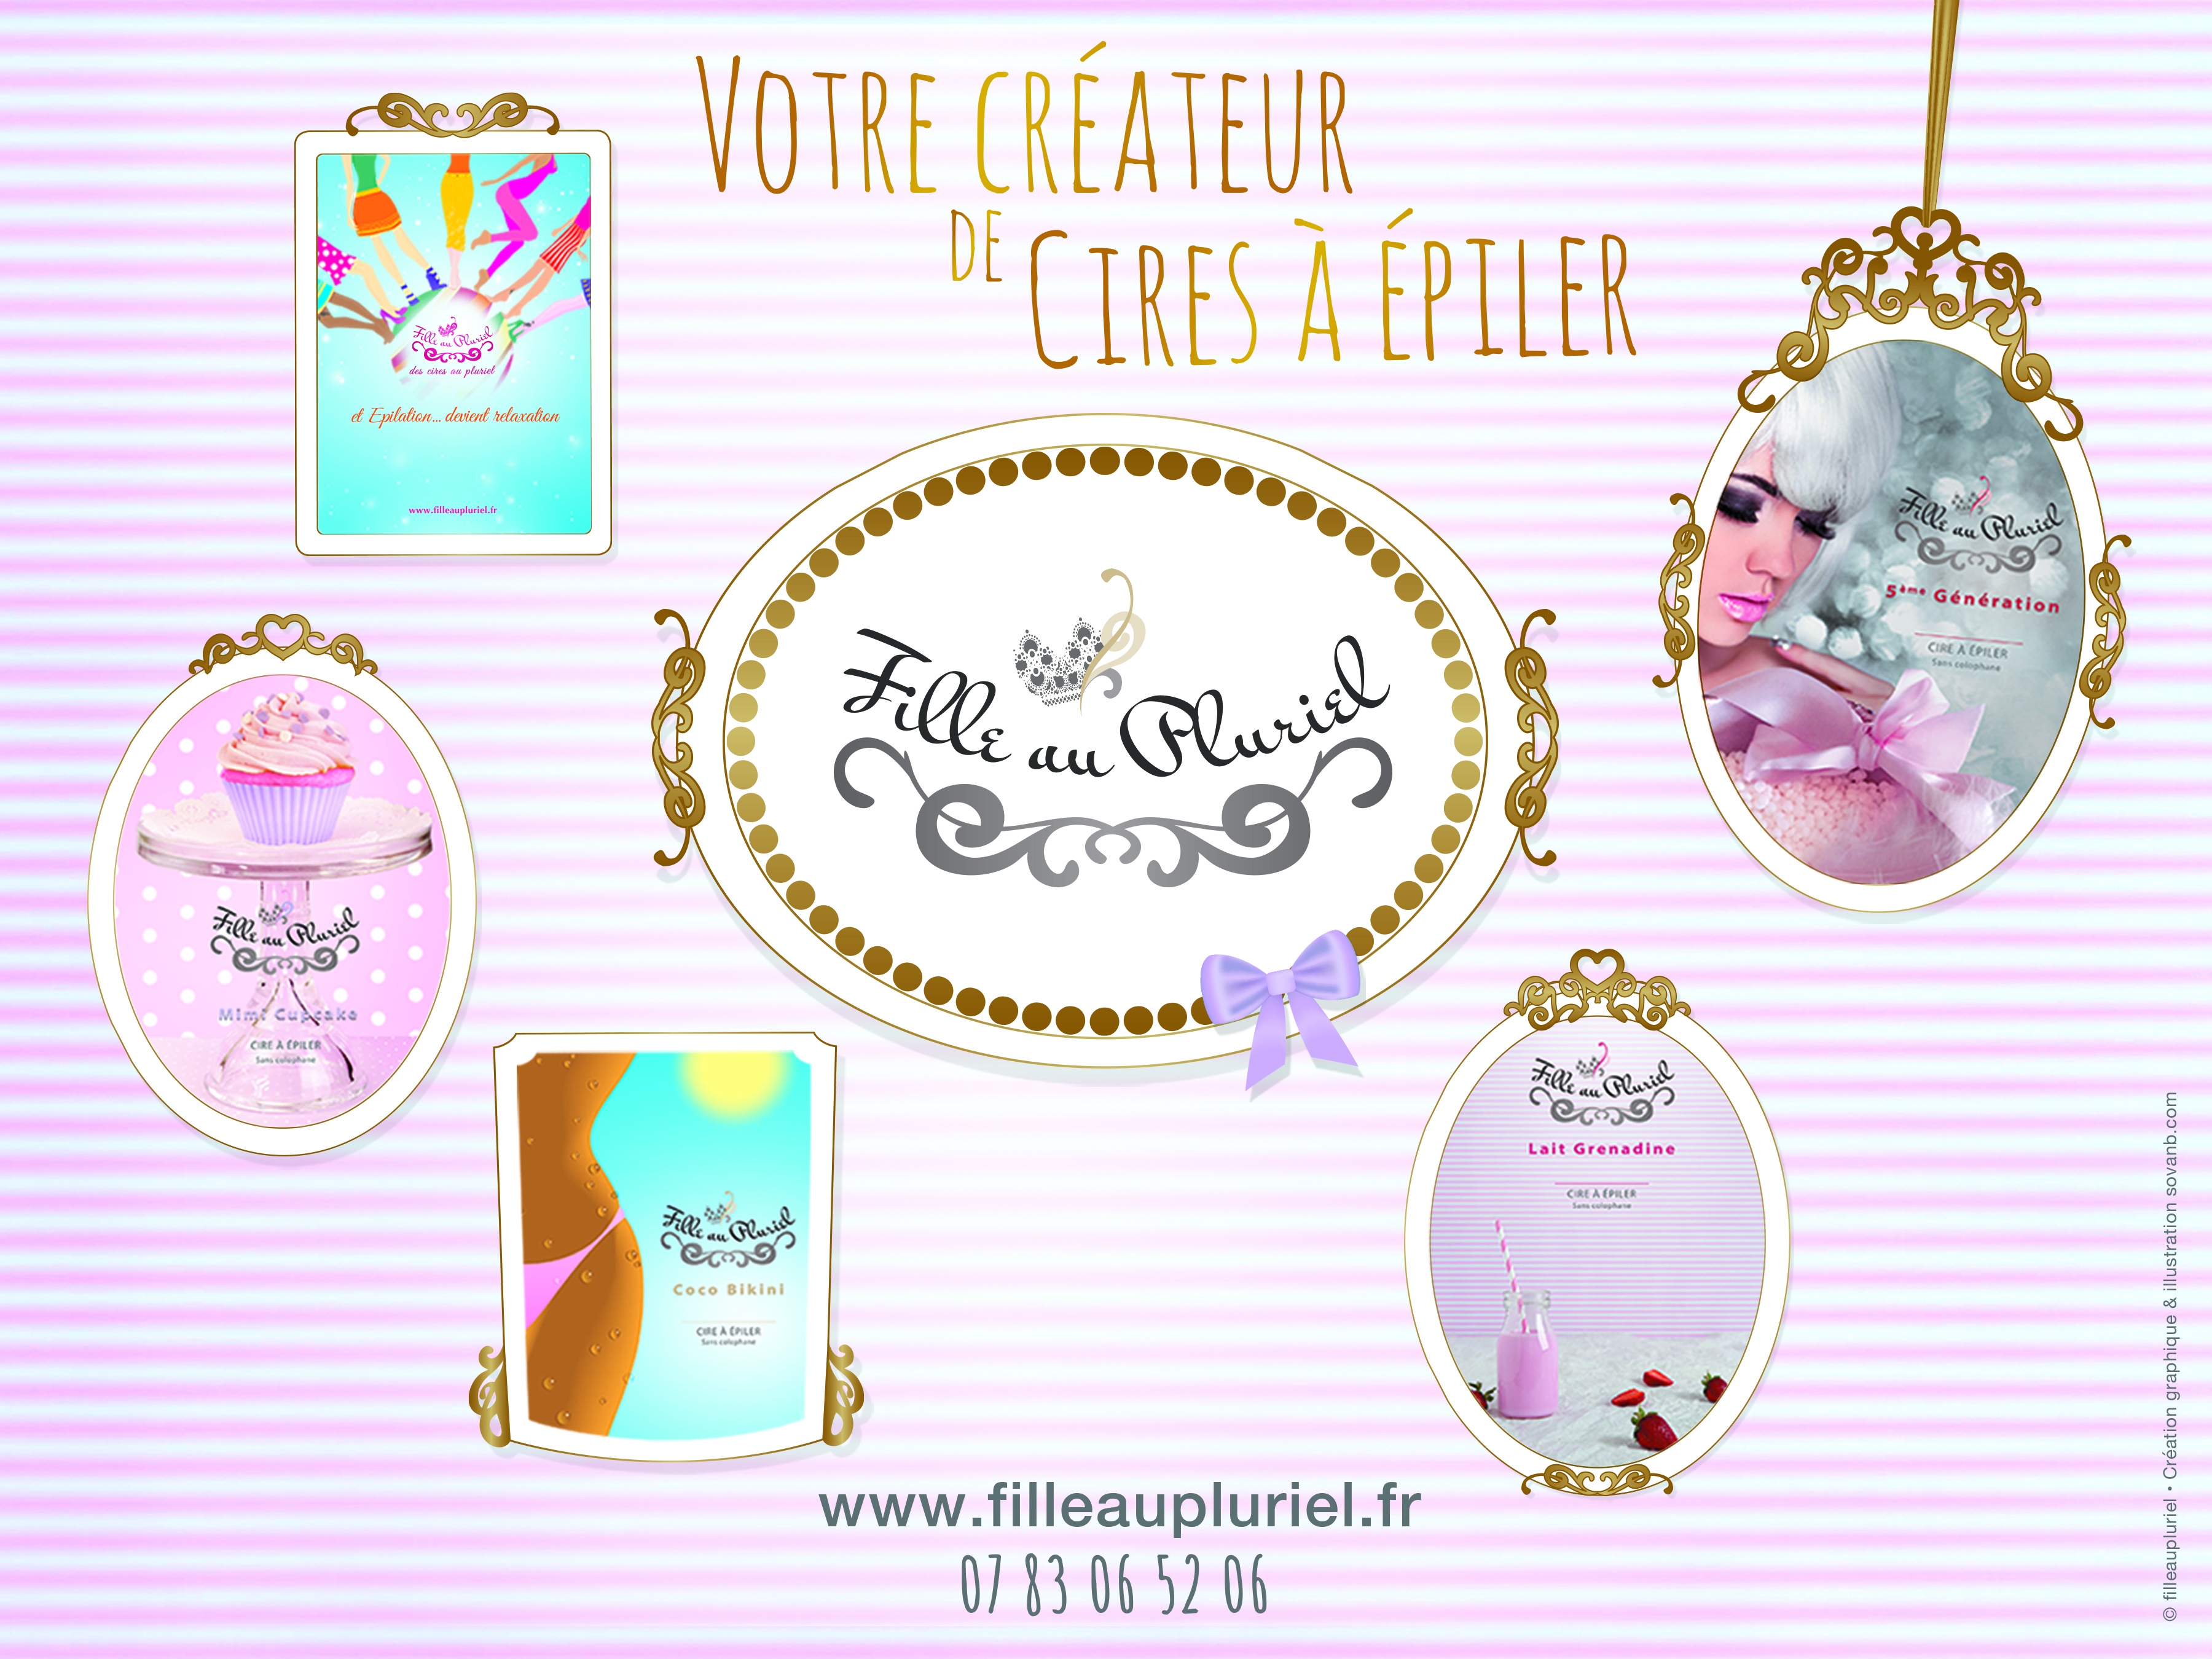 Chat pour rencontrer fille